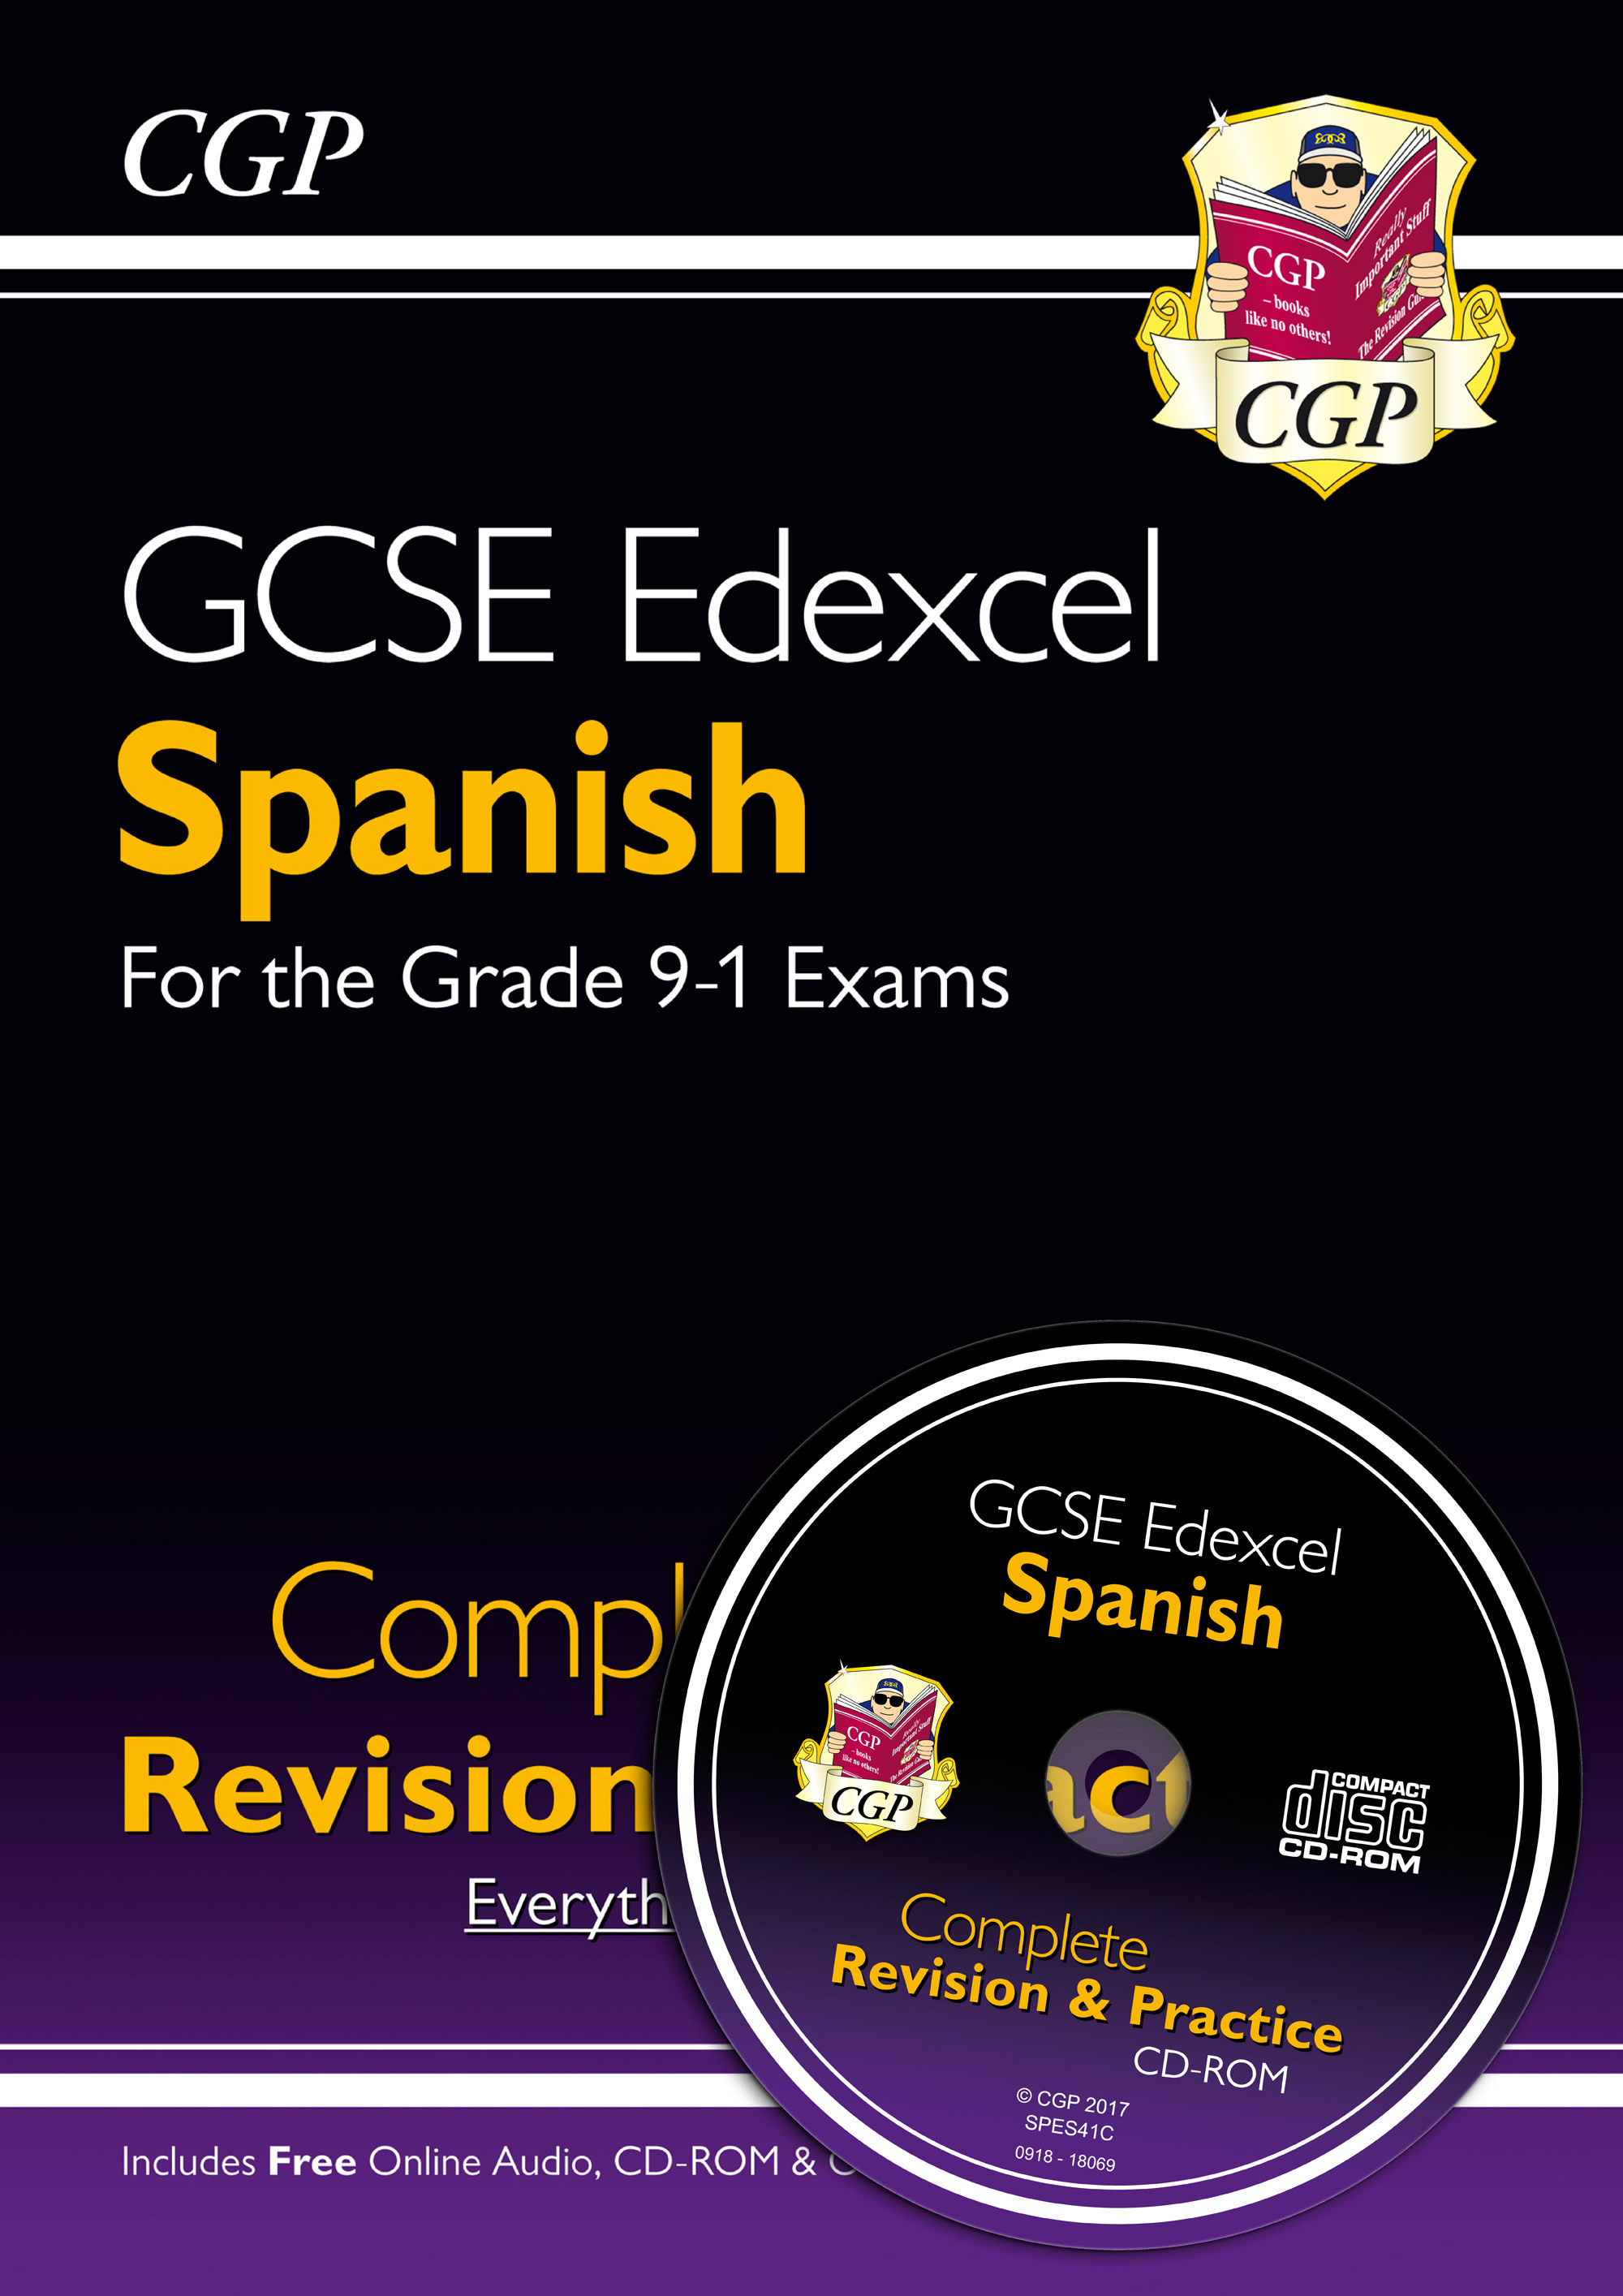 SPES41 - New GCSE Spanish Edexcel Complete Revision & Practice (with CD & Online Edition) - Grade 9-